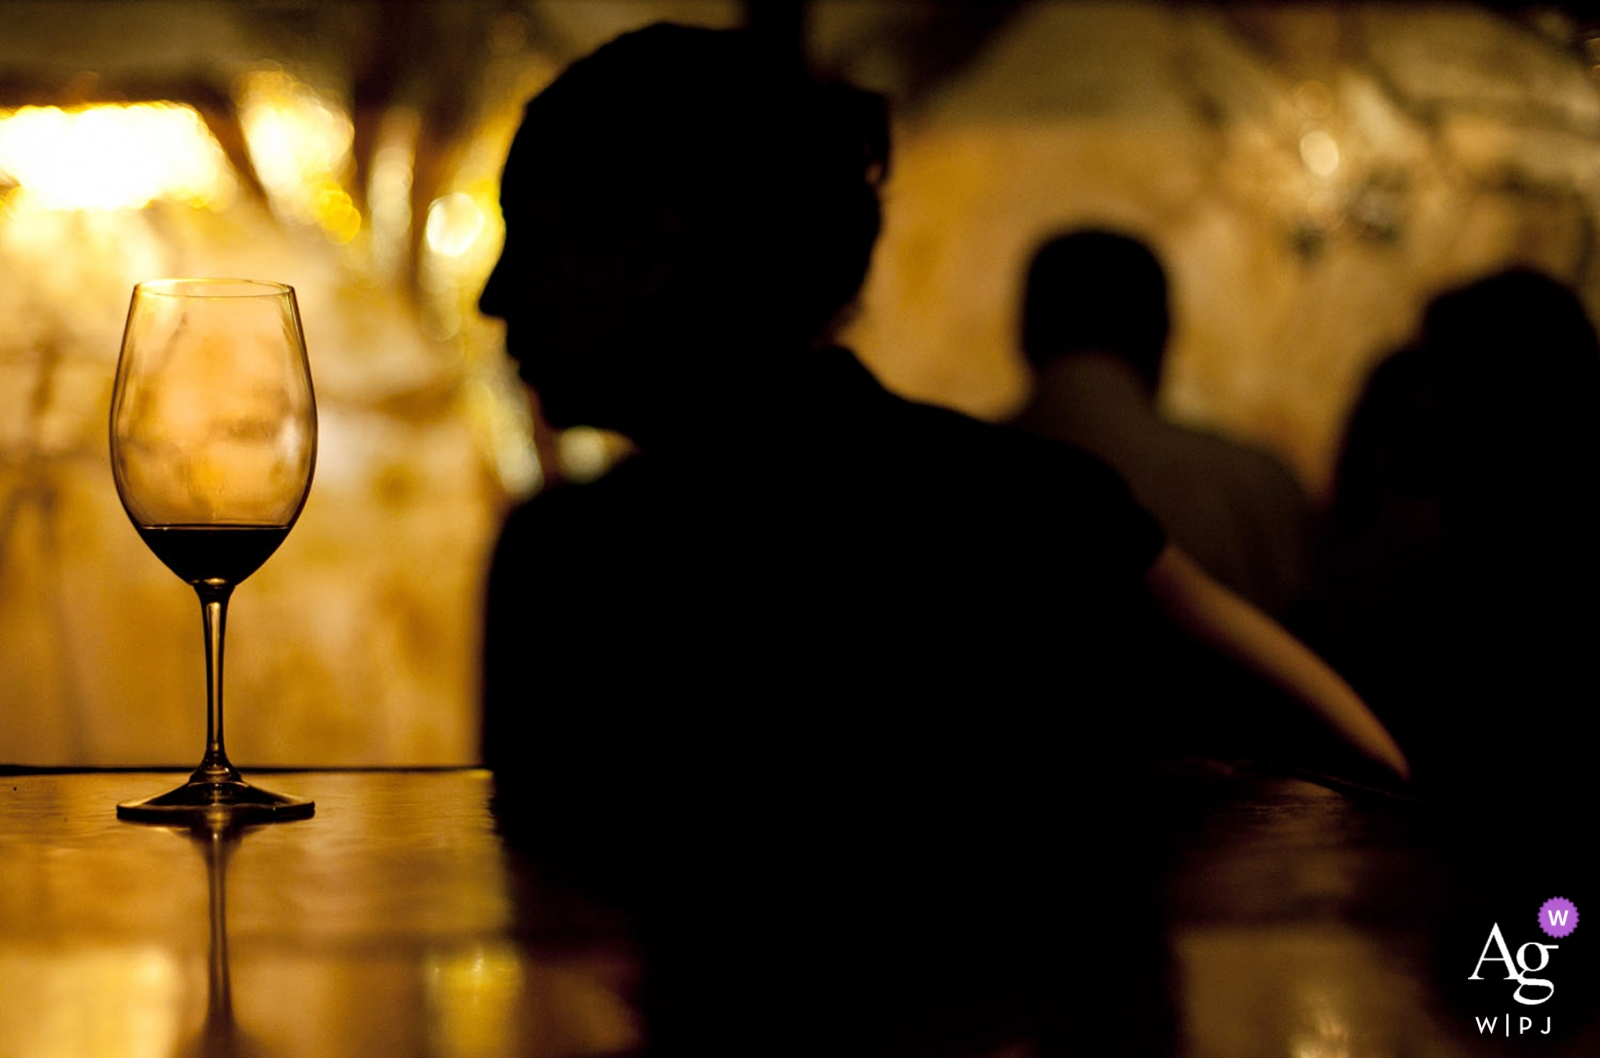 Phoenix artistic creative photography detail of wine glass with silhouette of man